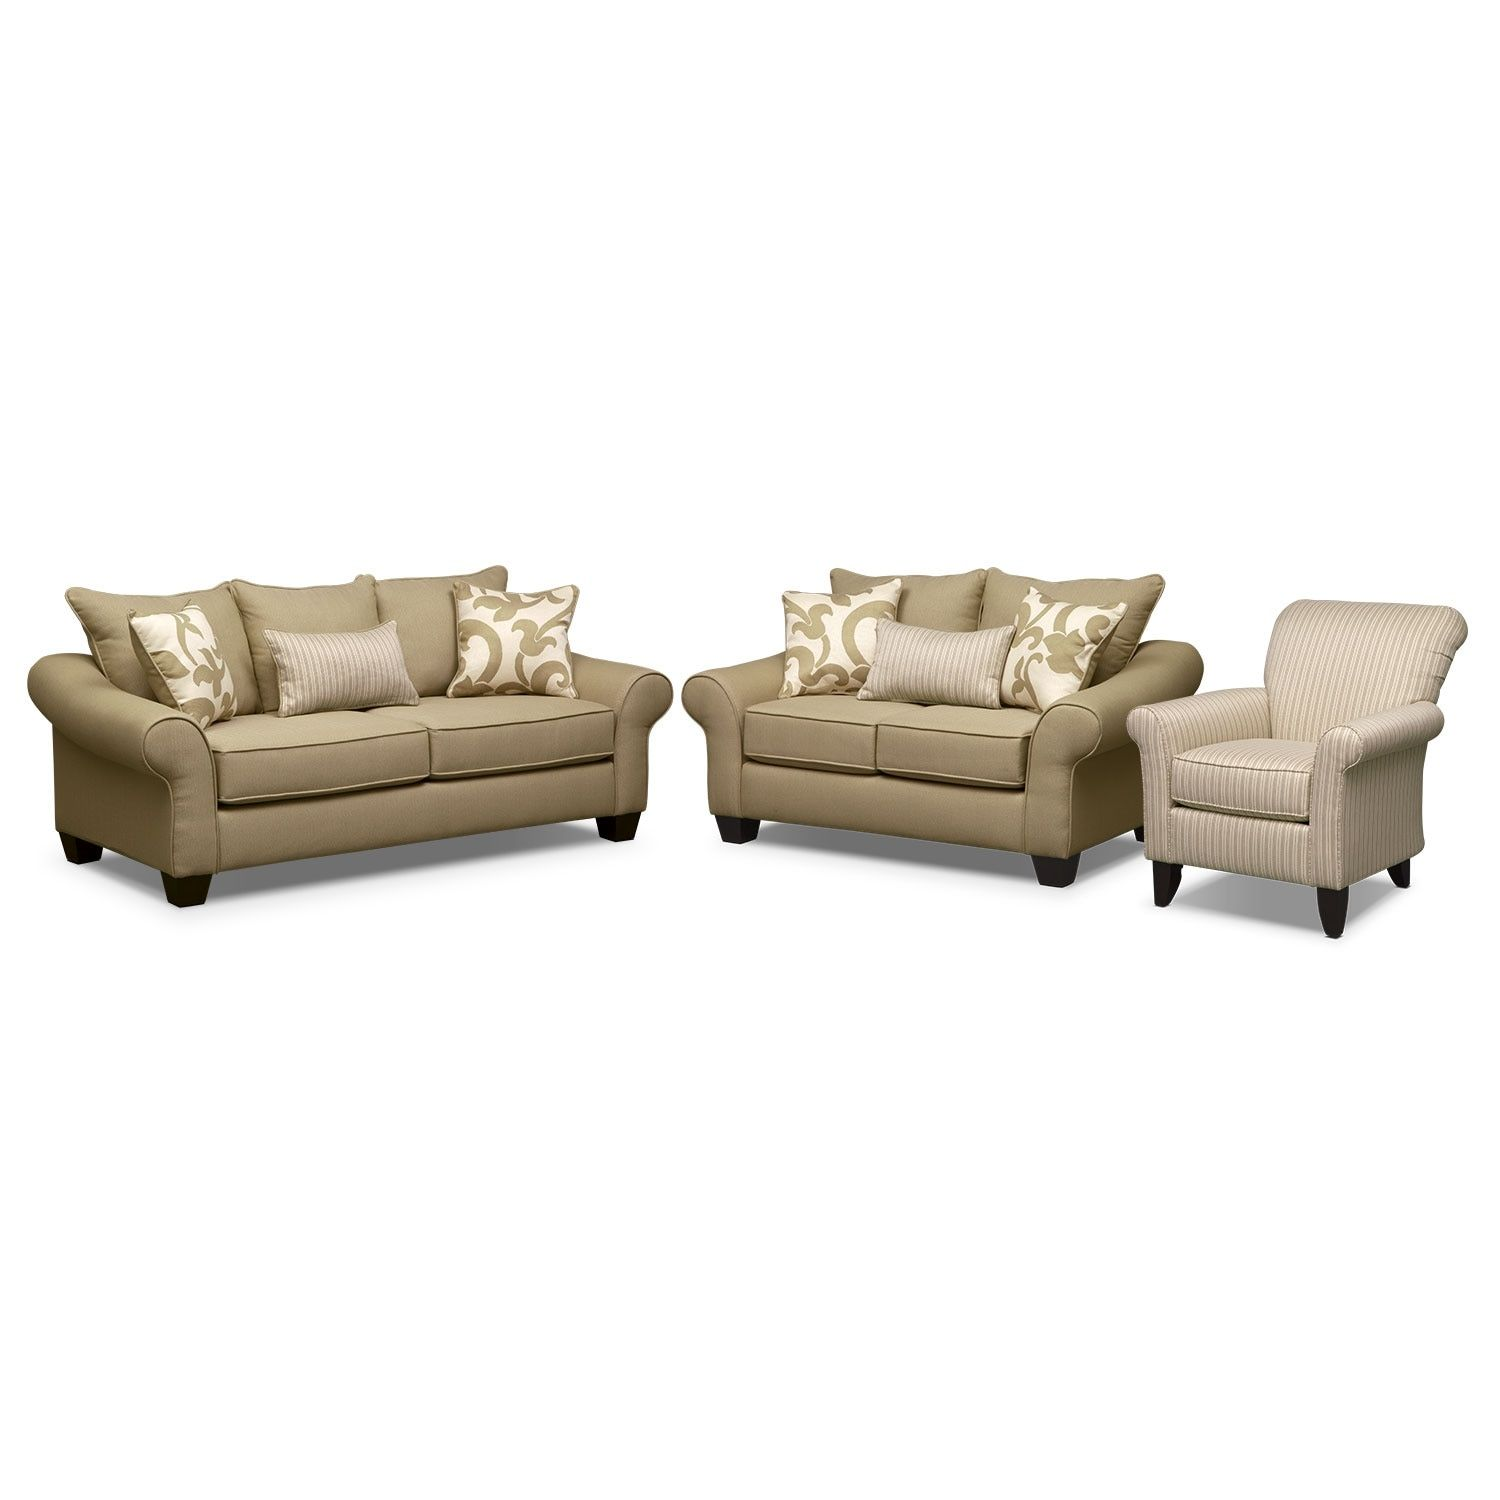 Colette Full Memory Foam Sleeper Sofa, Loveseat And Accent Chair Set   Khaki